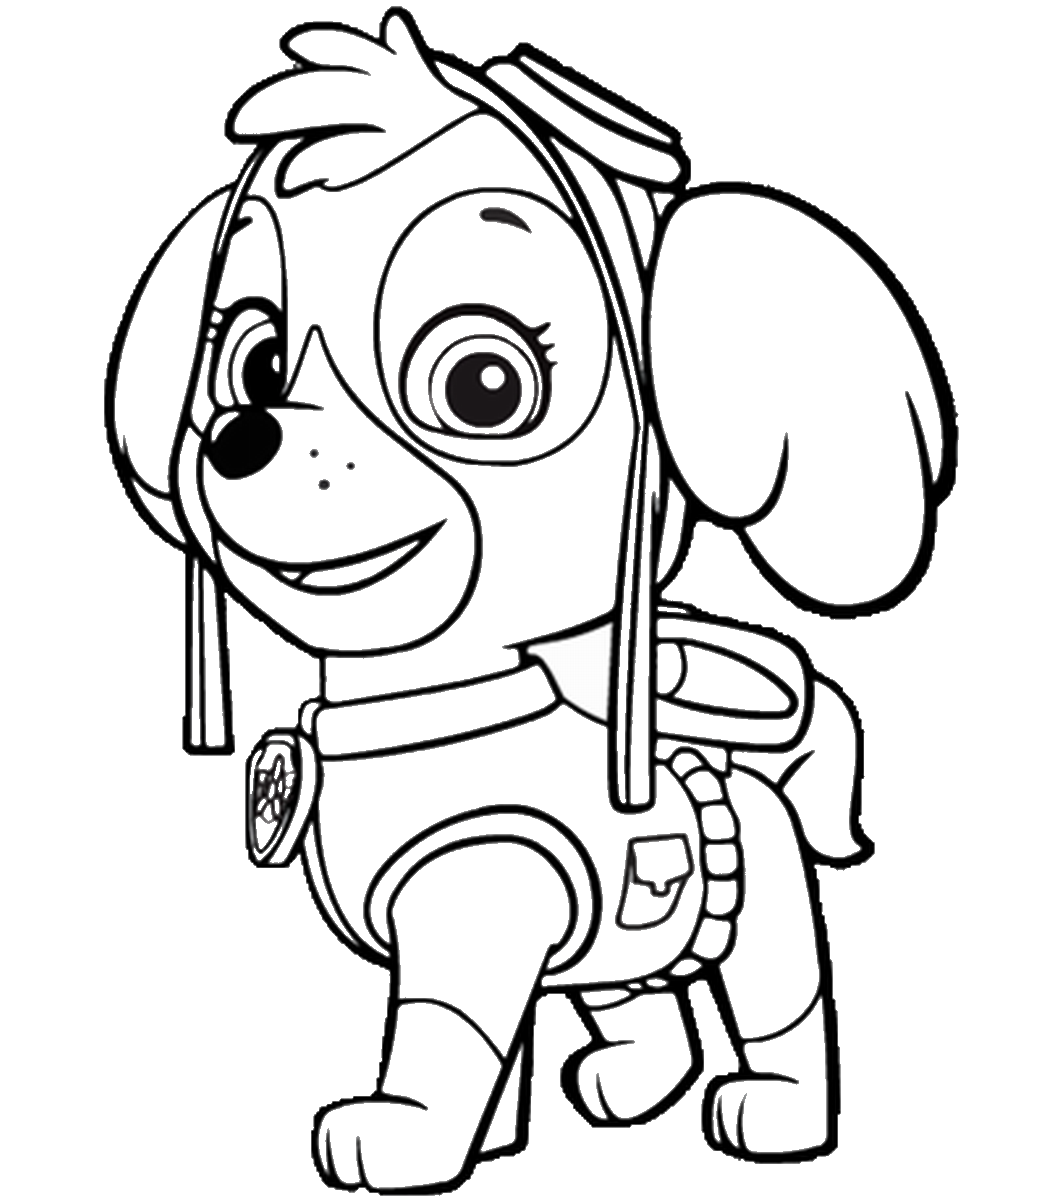 Print Now Paw patrol coloring pages, Paw patrol coloring